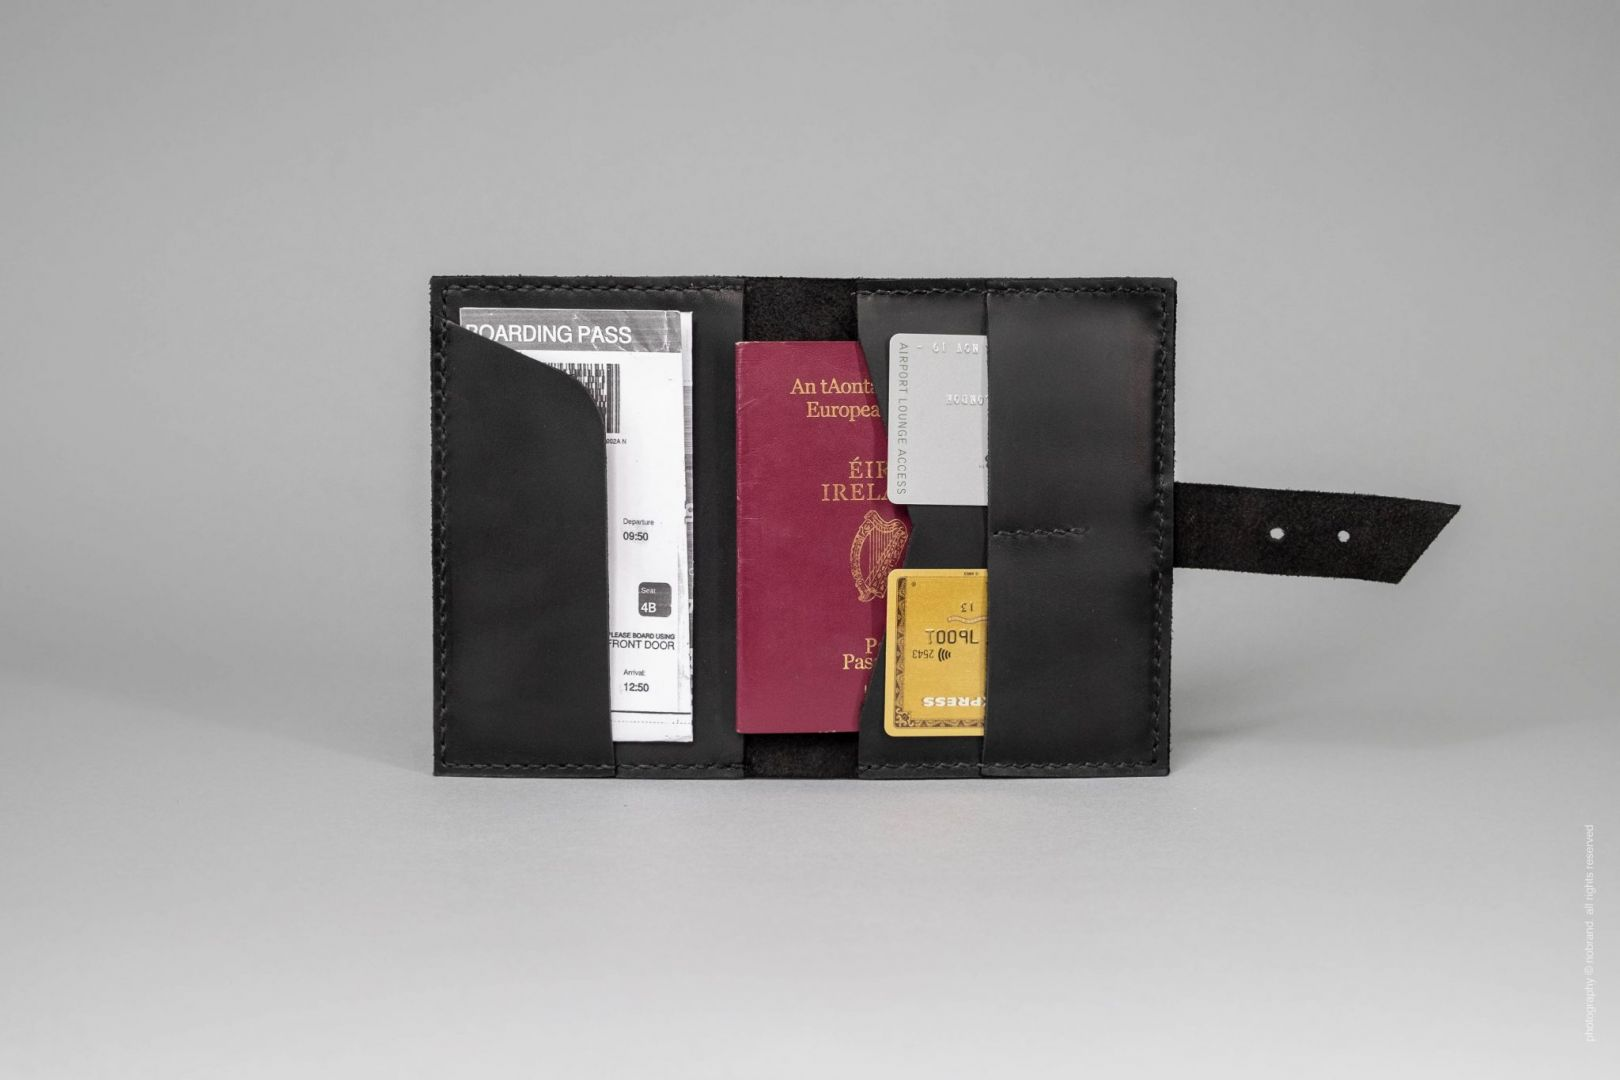 wallet passport cover